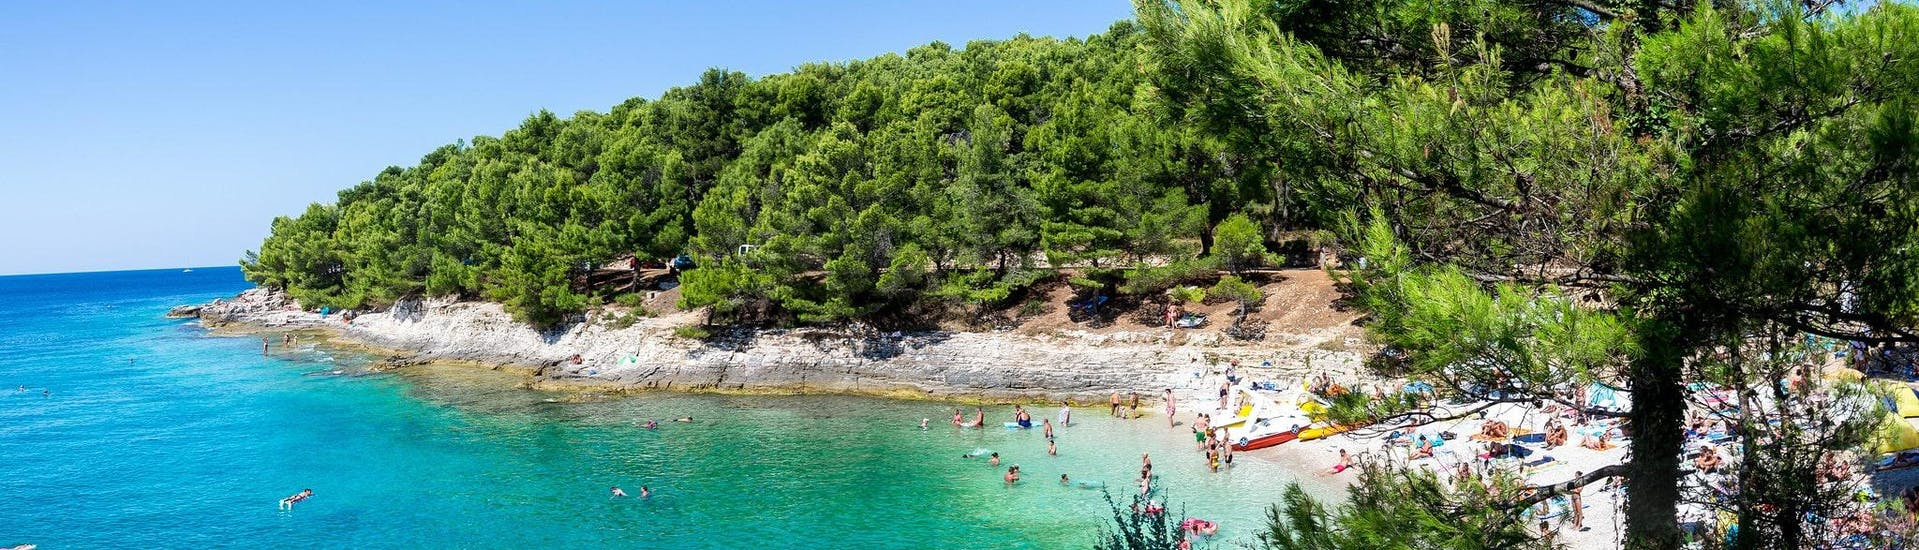 View of a beach at Kap Kamenjak, which is a popular destination for sea kayaking in Pula.